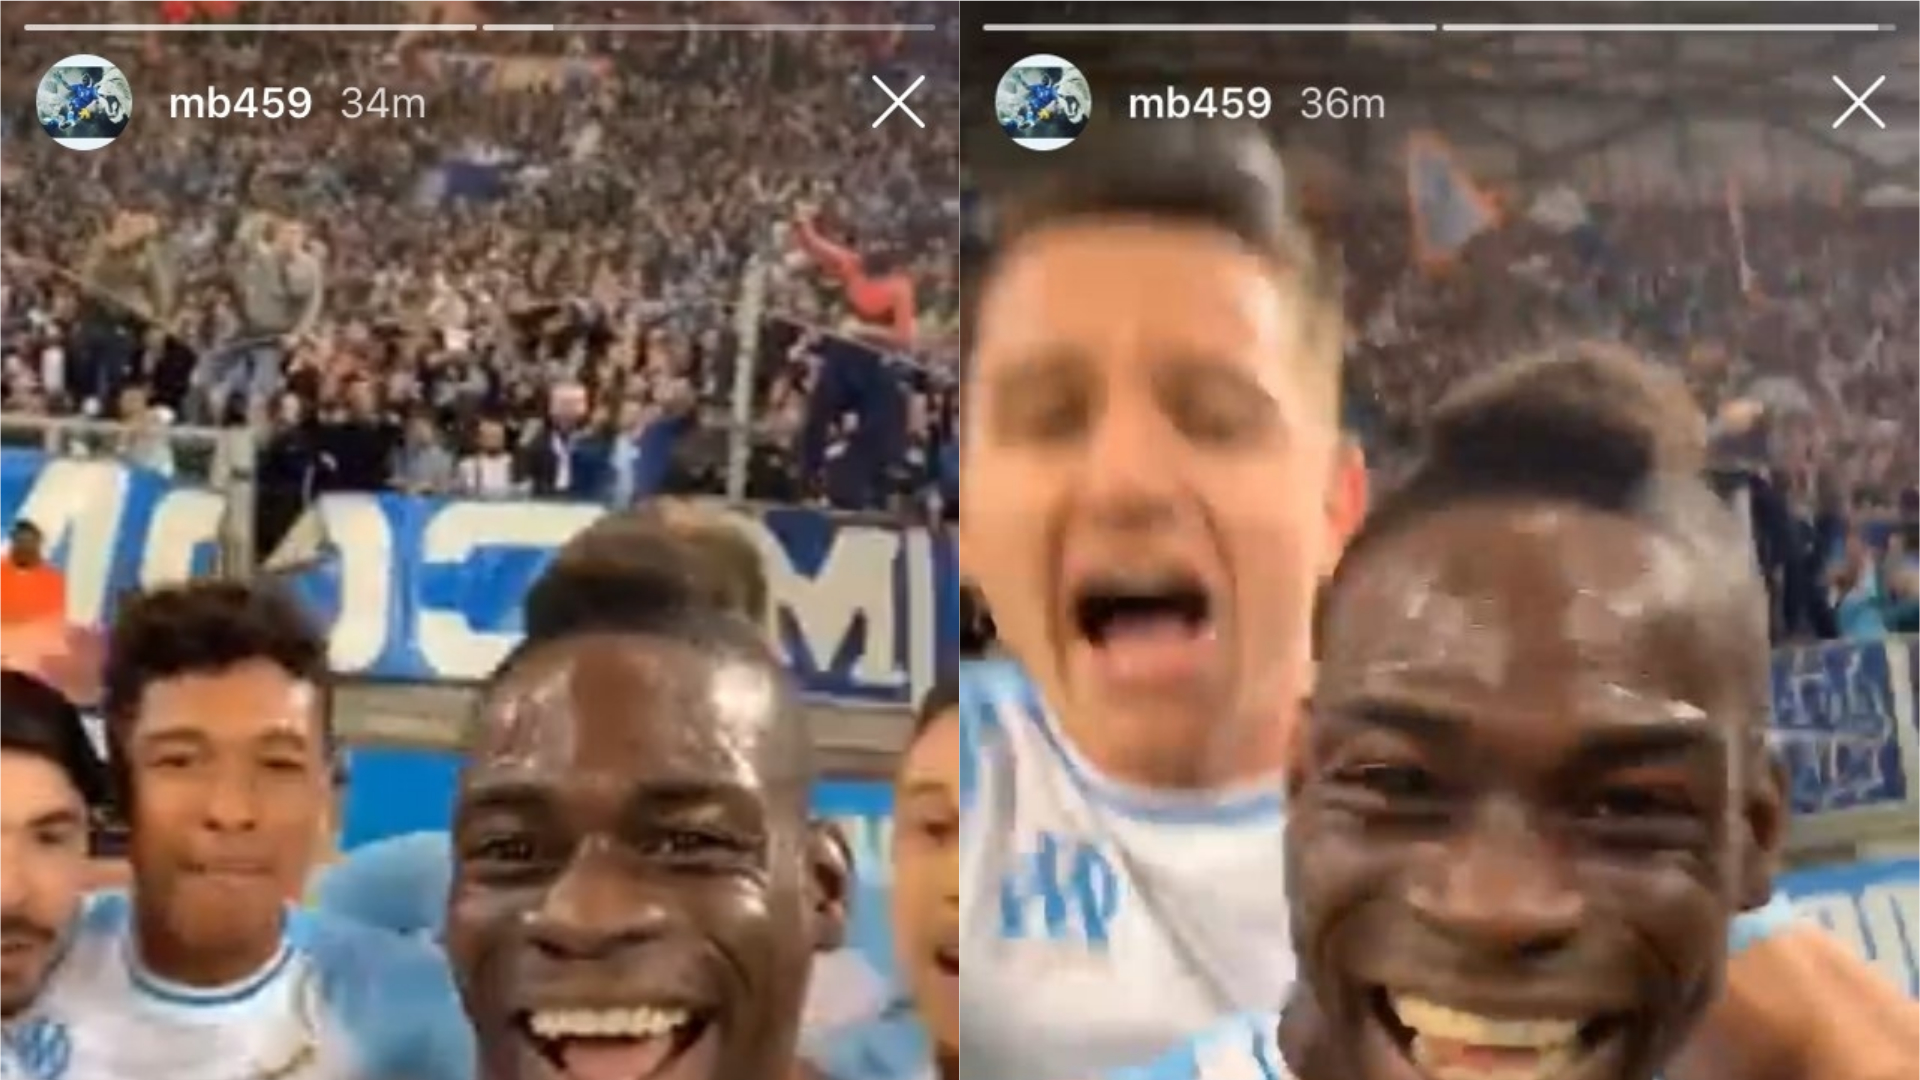 Mario Balotelli celebrates with selfie after goal in Marseille win